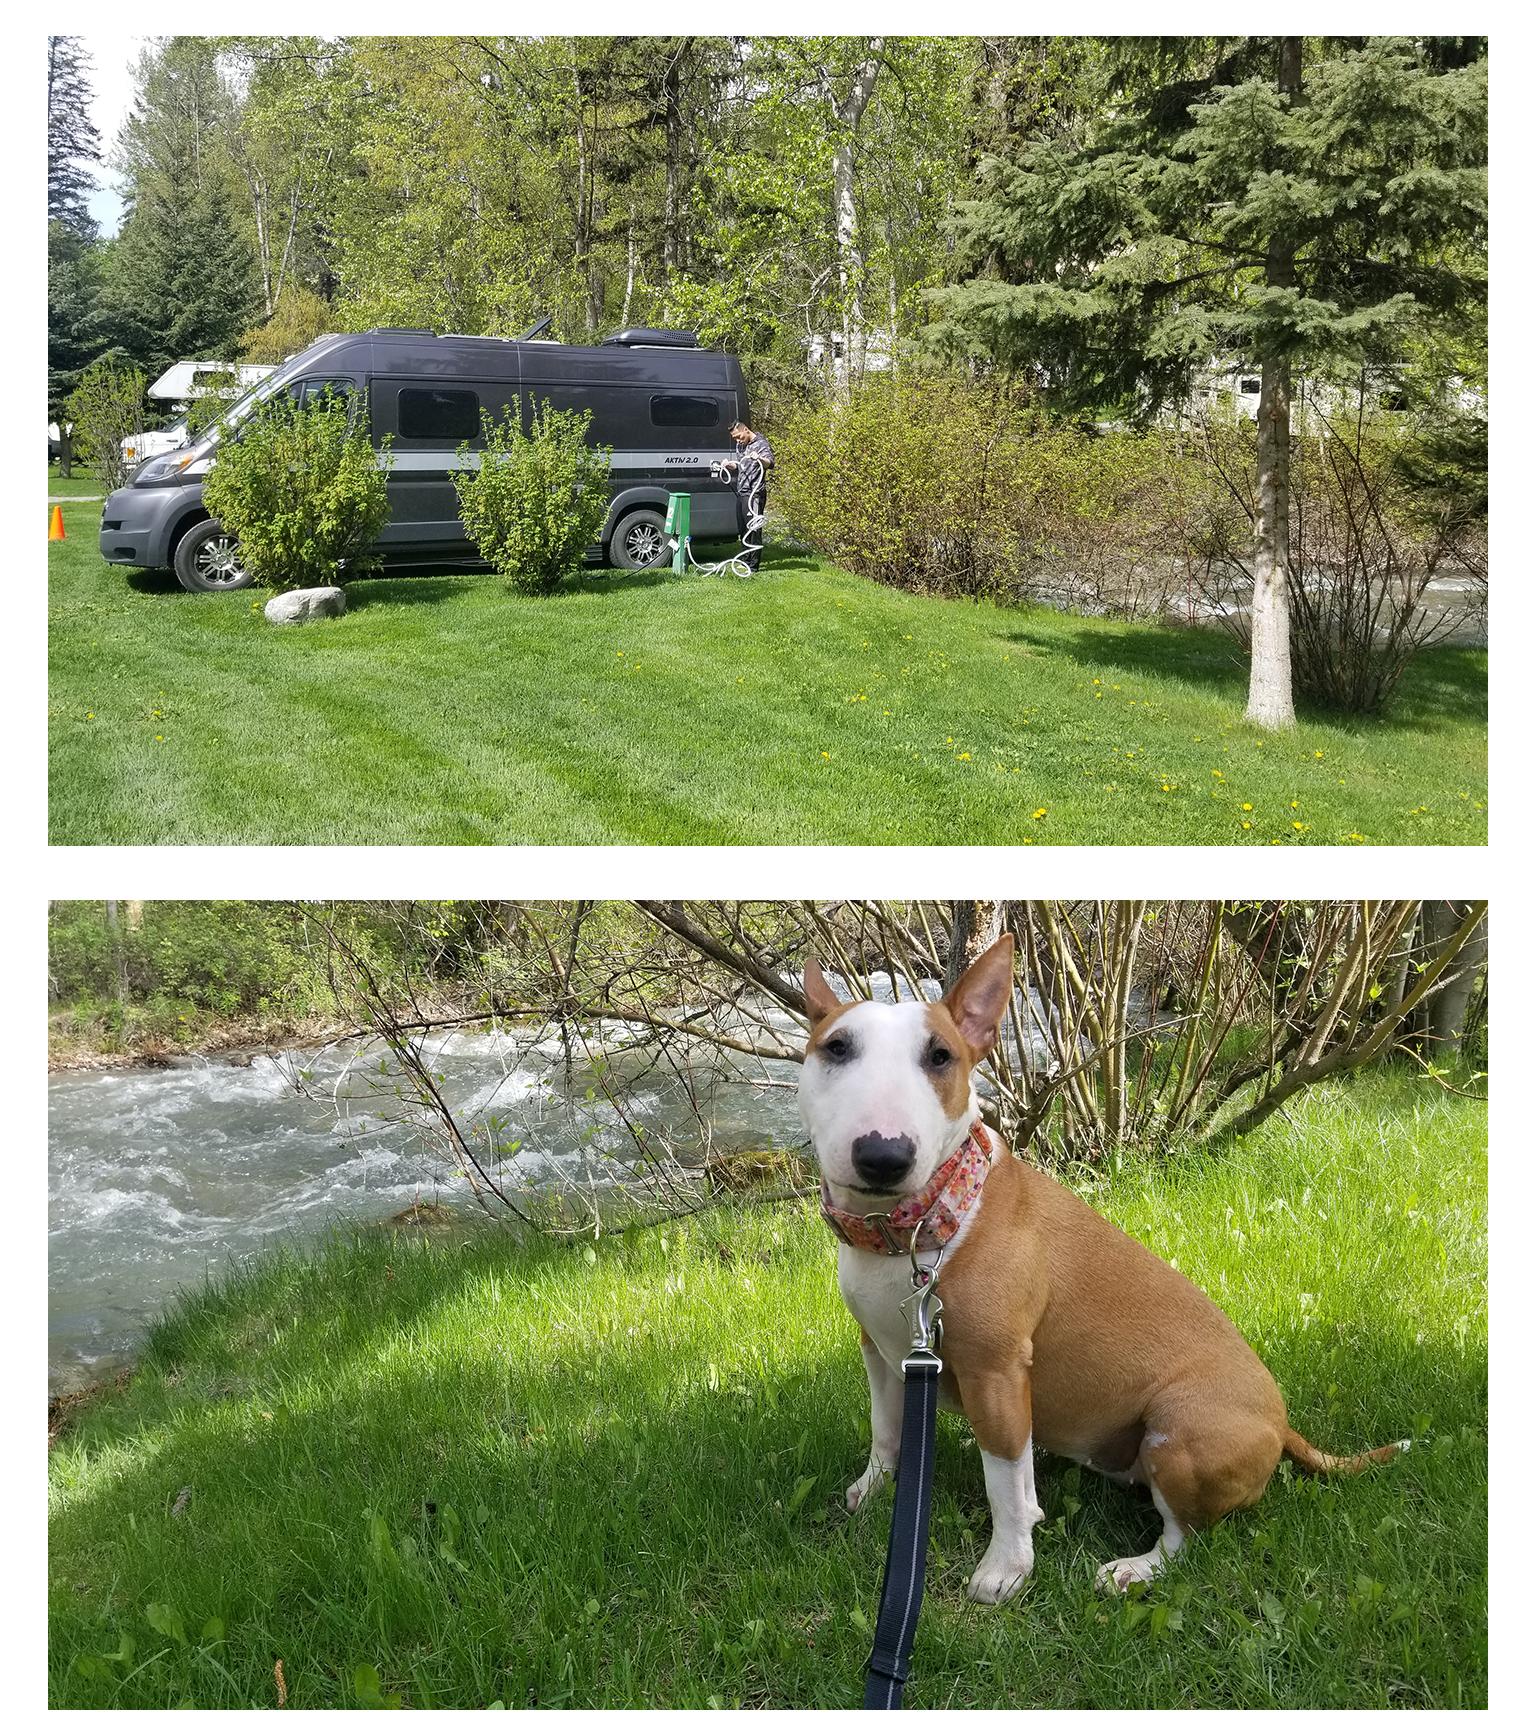 Canyon RV in Radium - Site #12